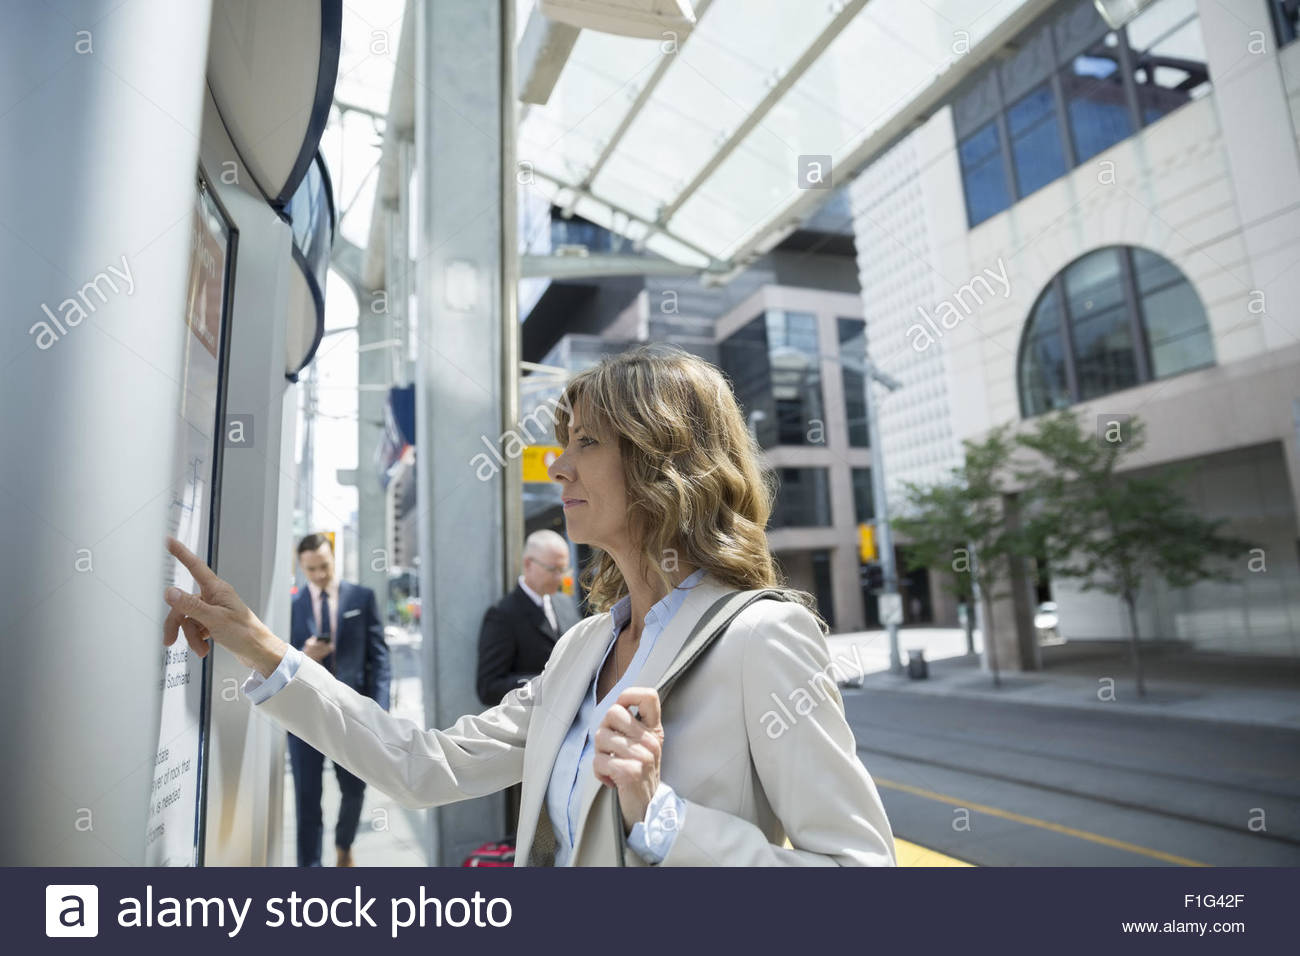 Businesswoman checking train schedule in city - Stock Image